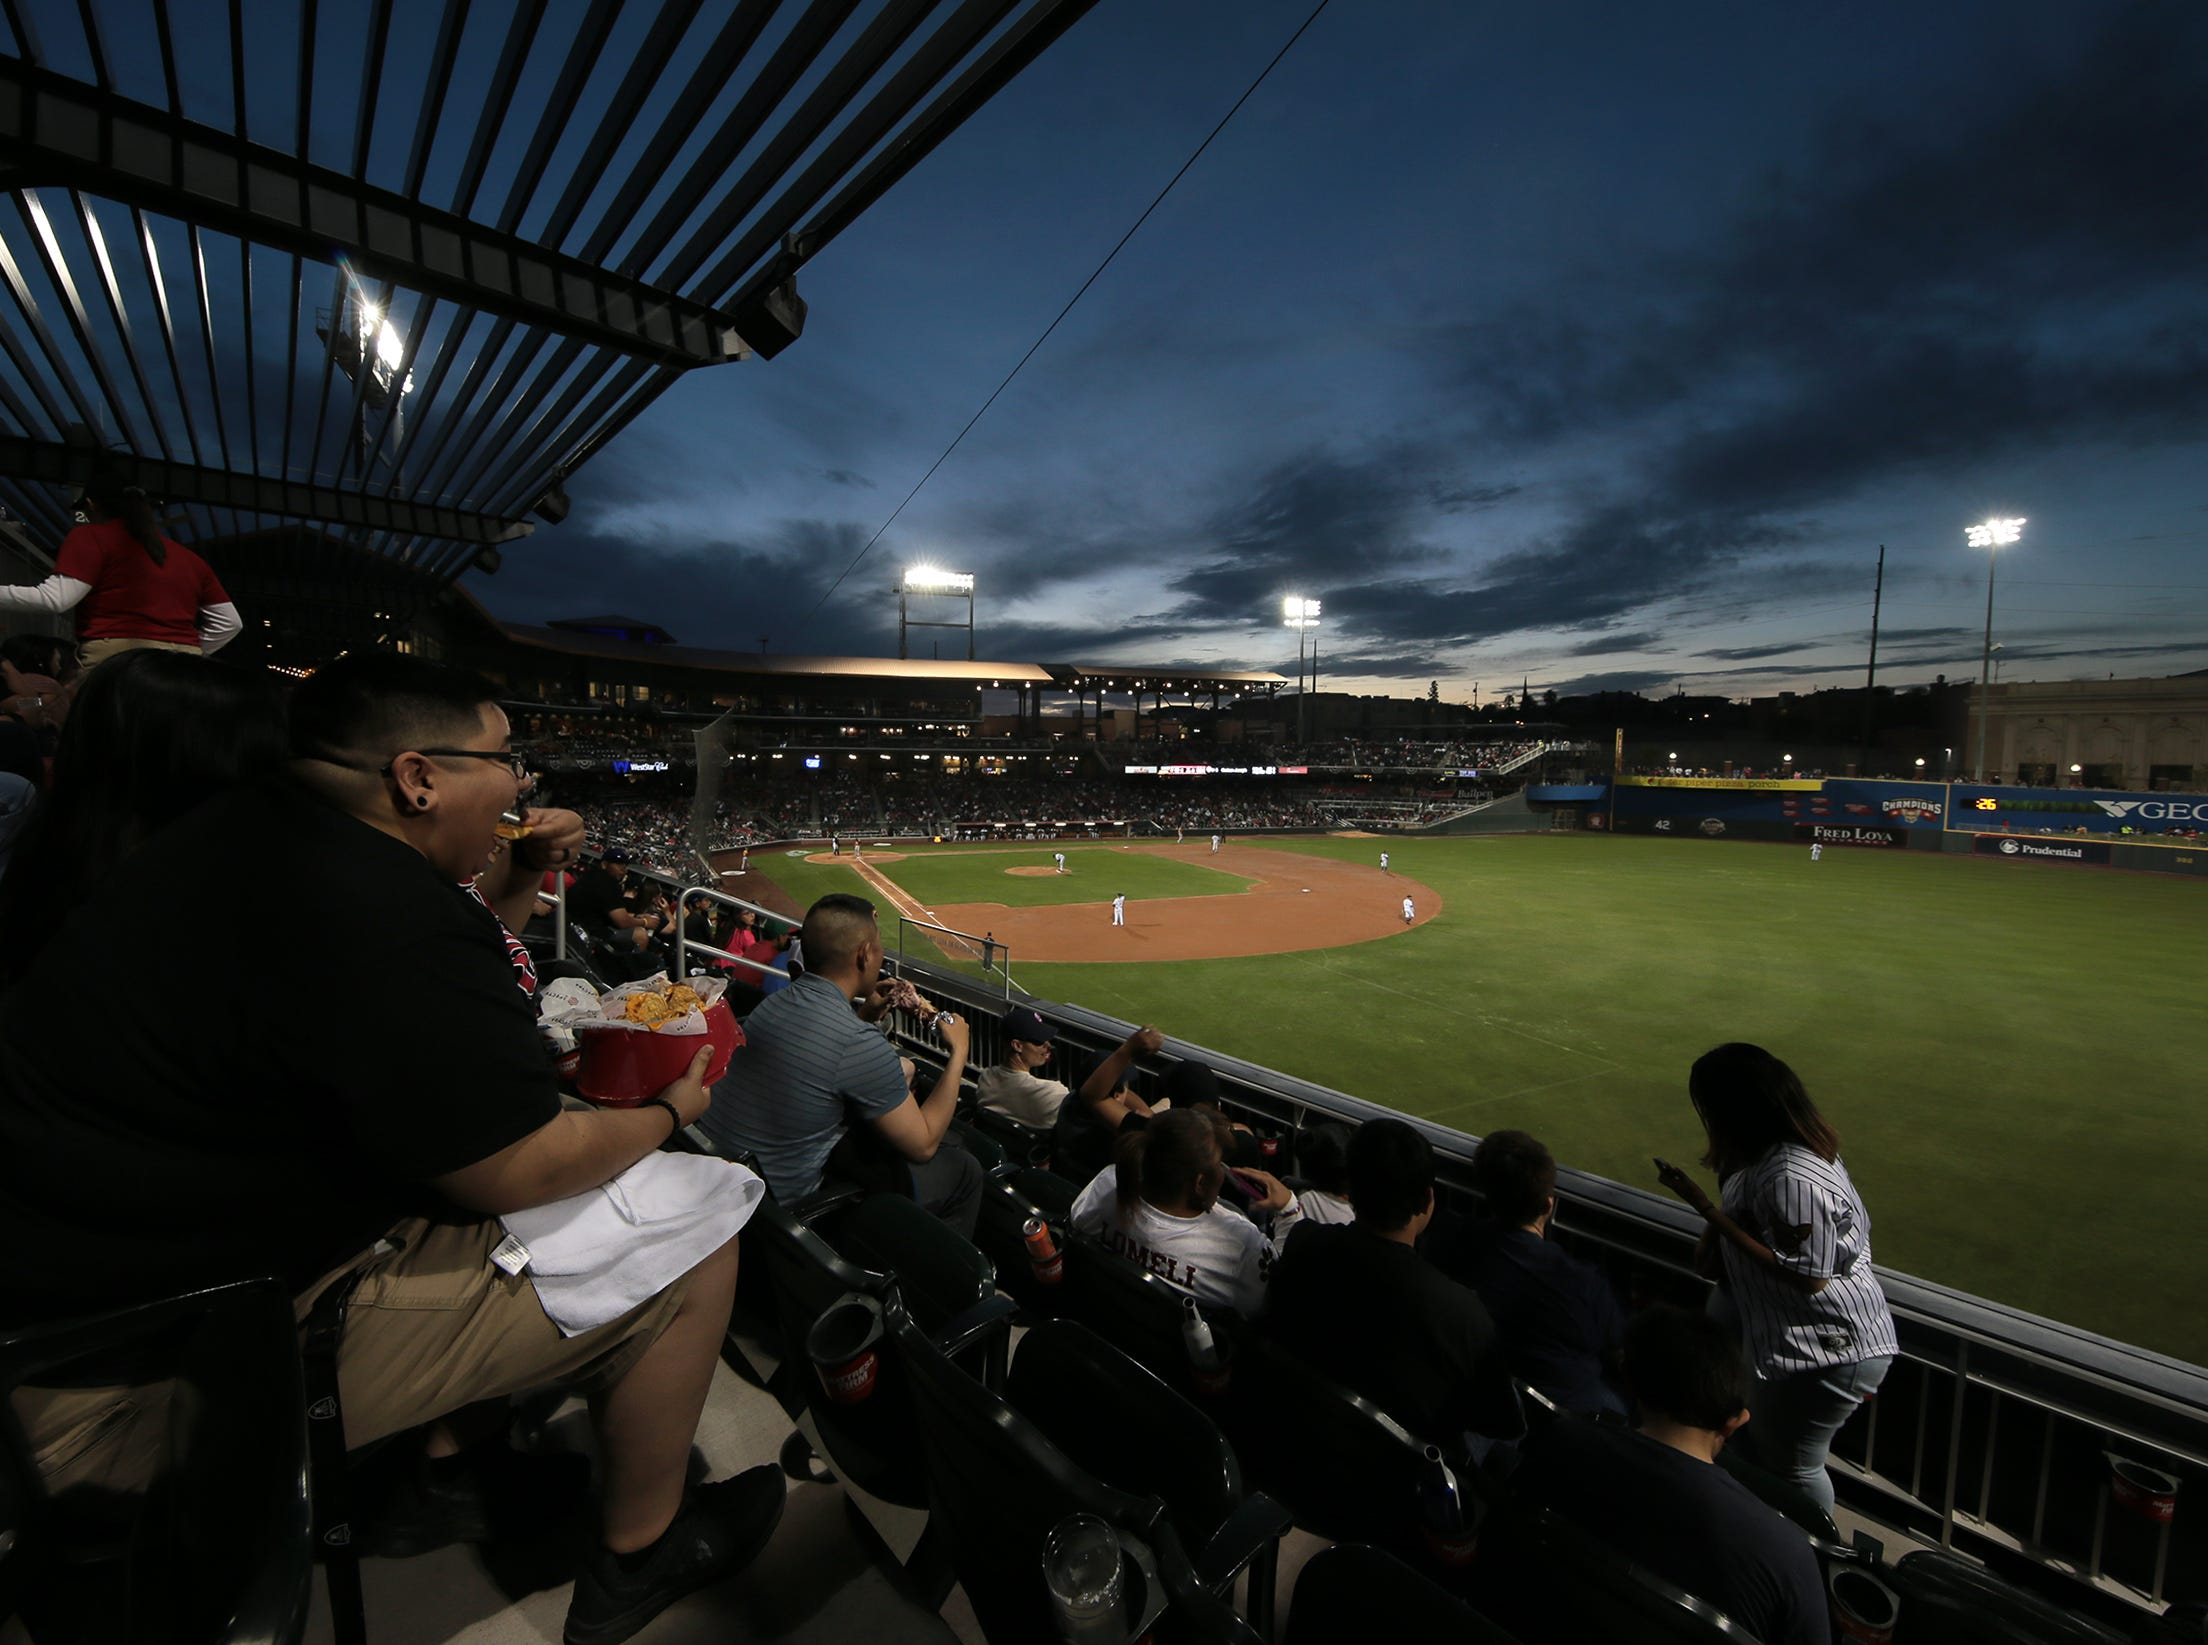 The sun sets over Southwest University Park for the first time in the 2019 season.